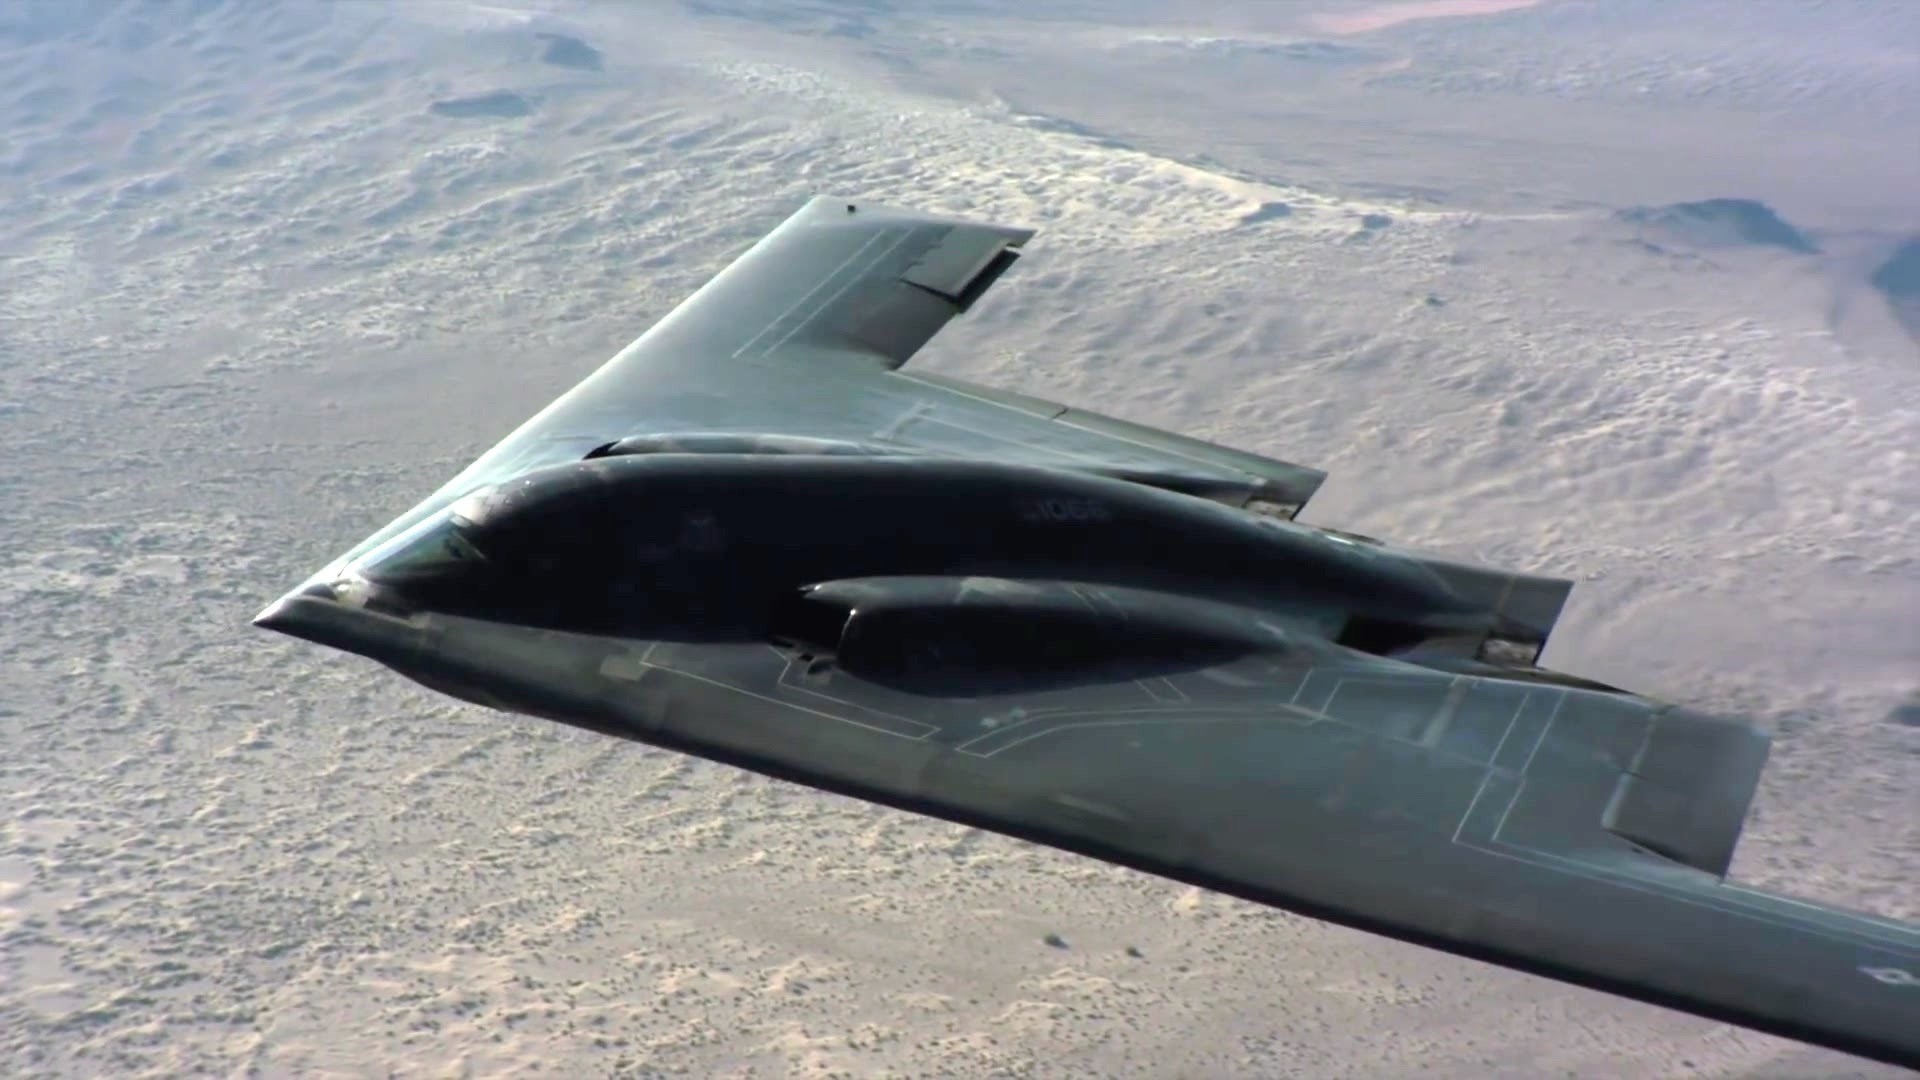 63 Stealth Bomber Wallpapers on WallpaperPlay 1920x1080